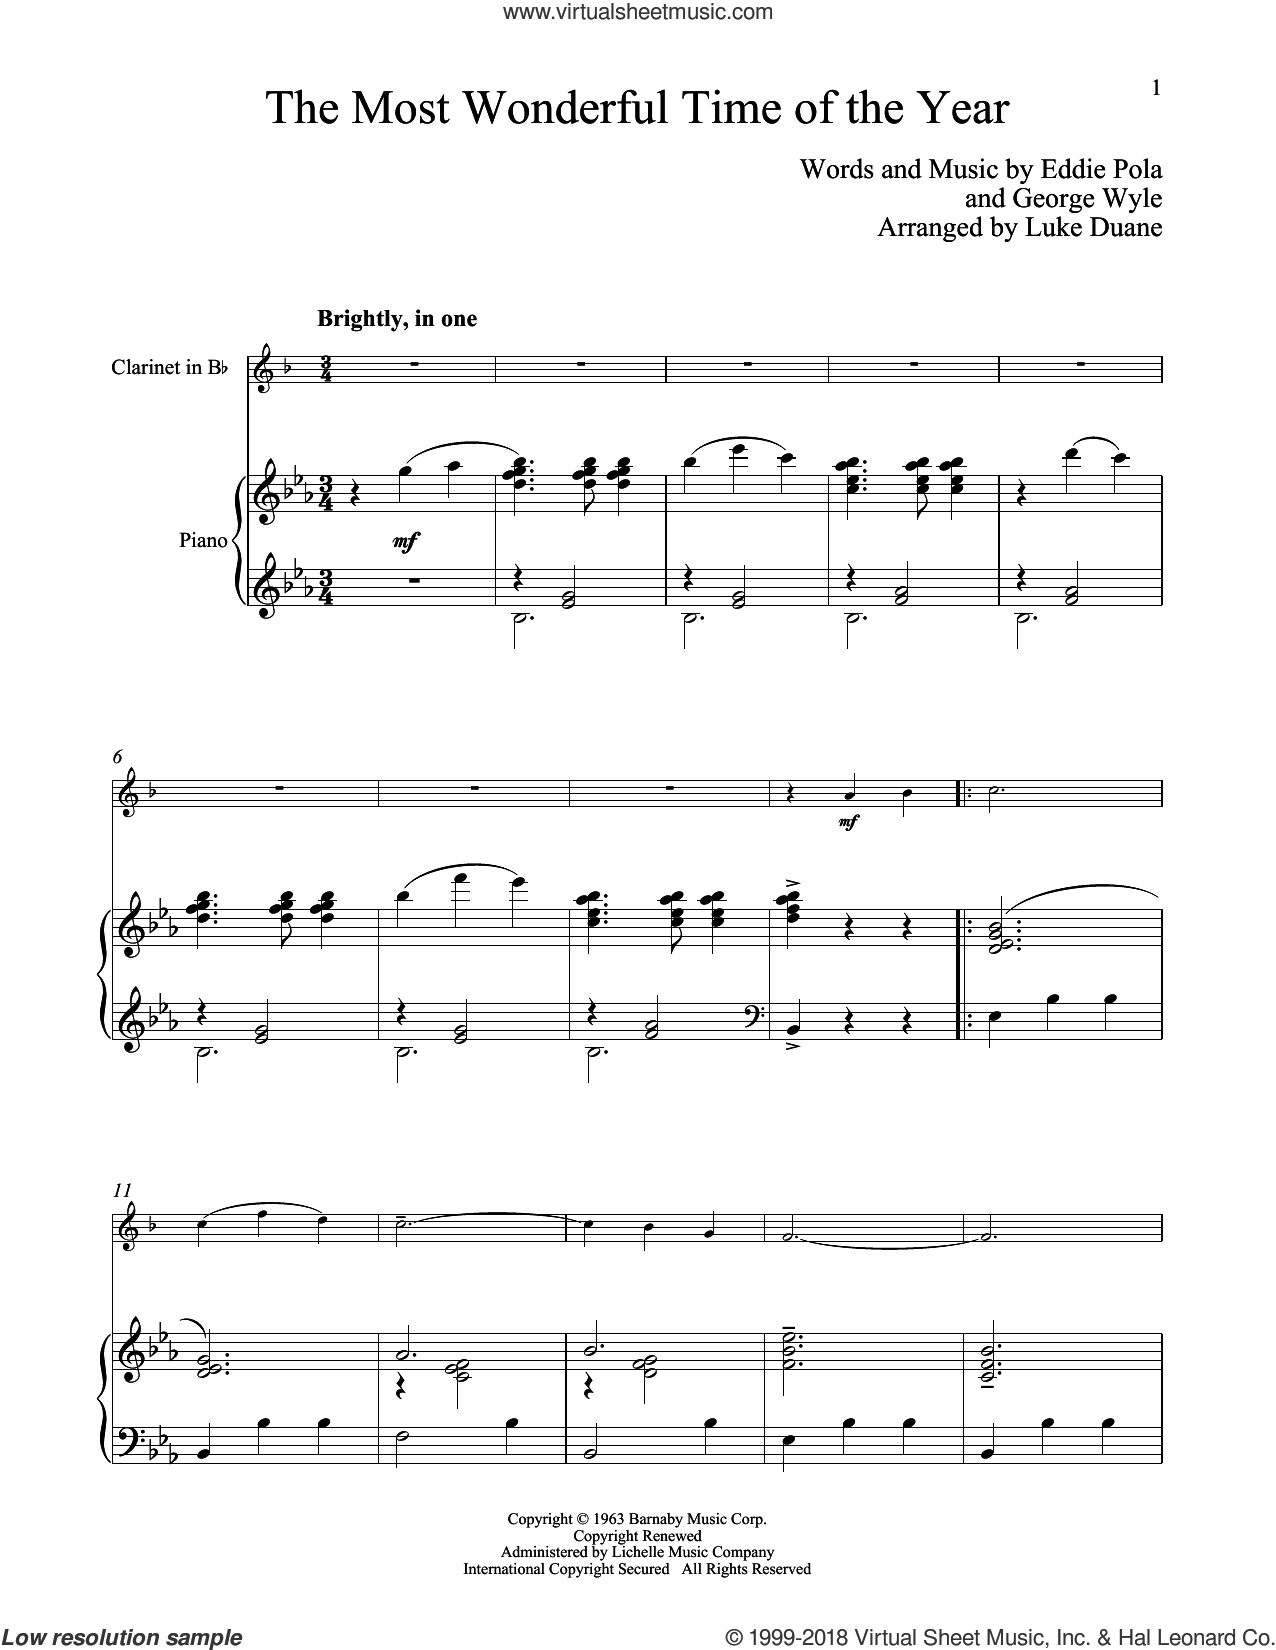 The Most Wonderful Time Of The Year sheet music for clarinet and piano by George Wyle and Eddie Pola, classical score, intermediate skill level